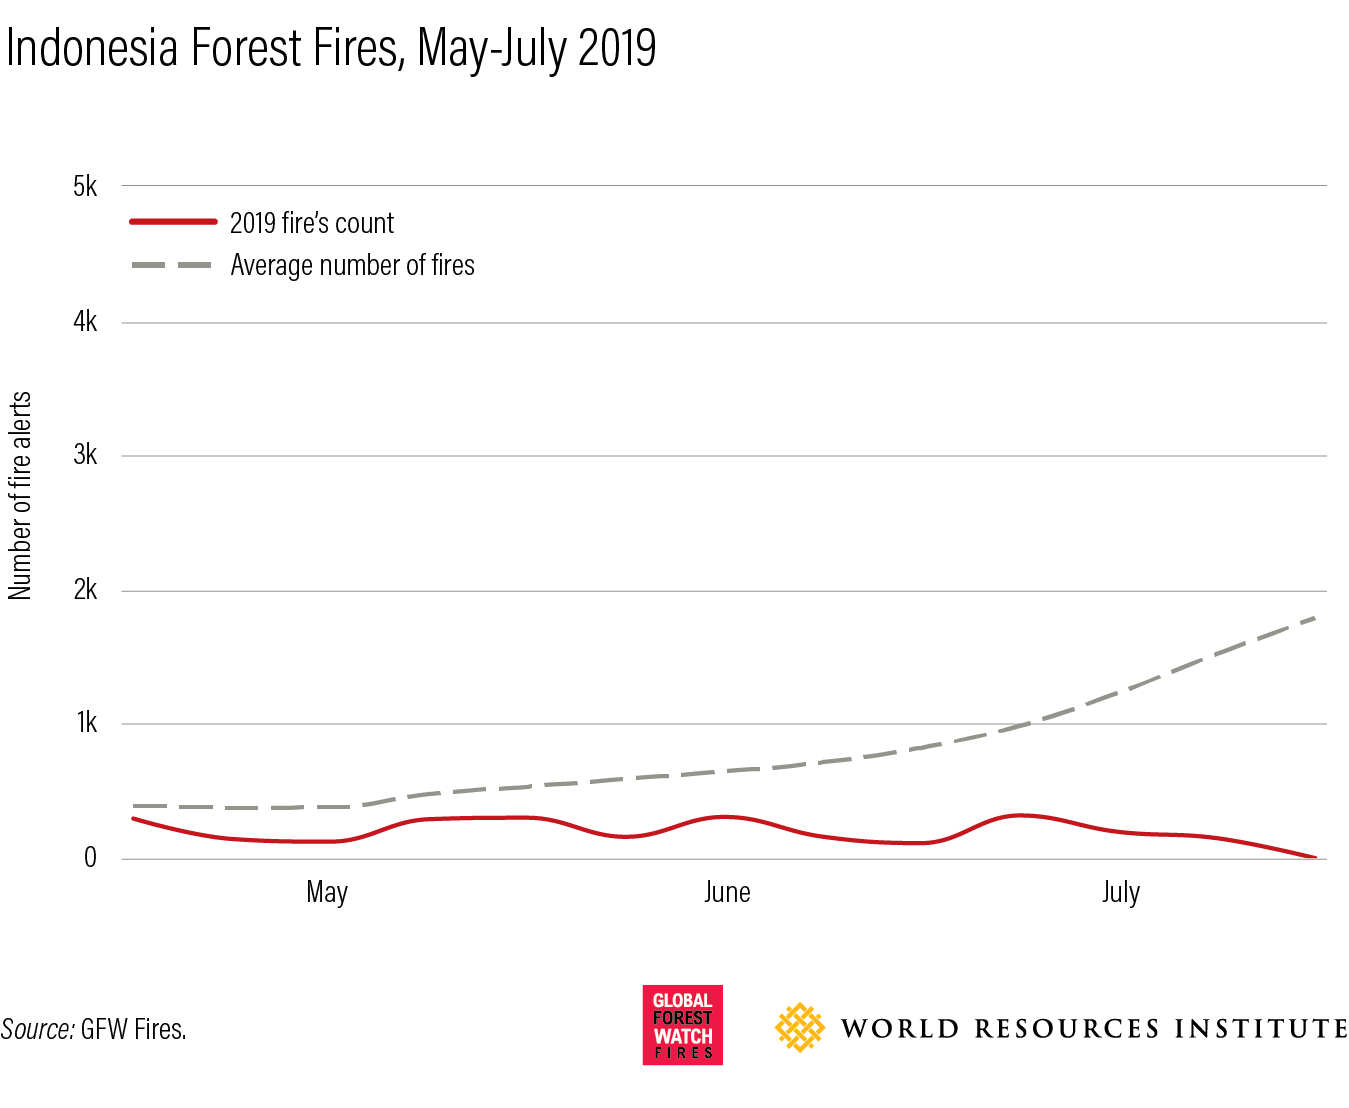 average fires compared to 2019